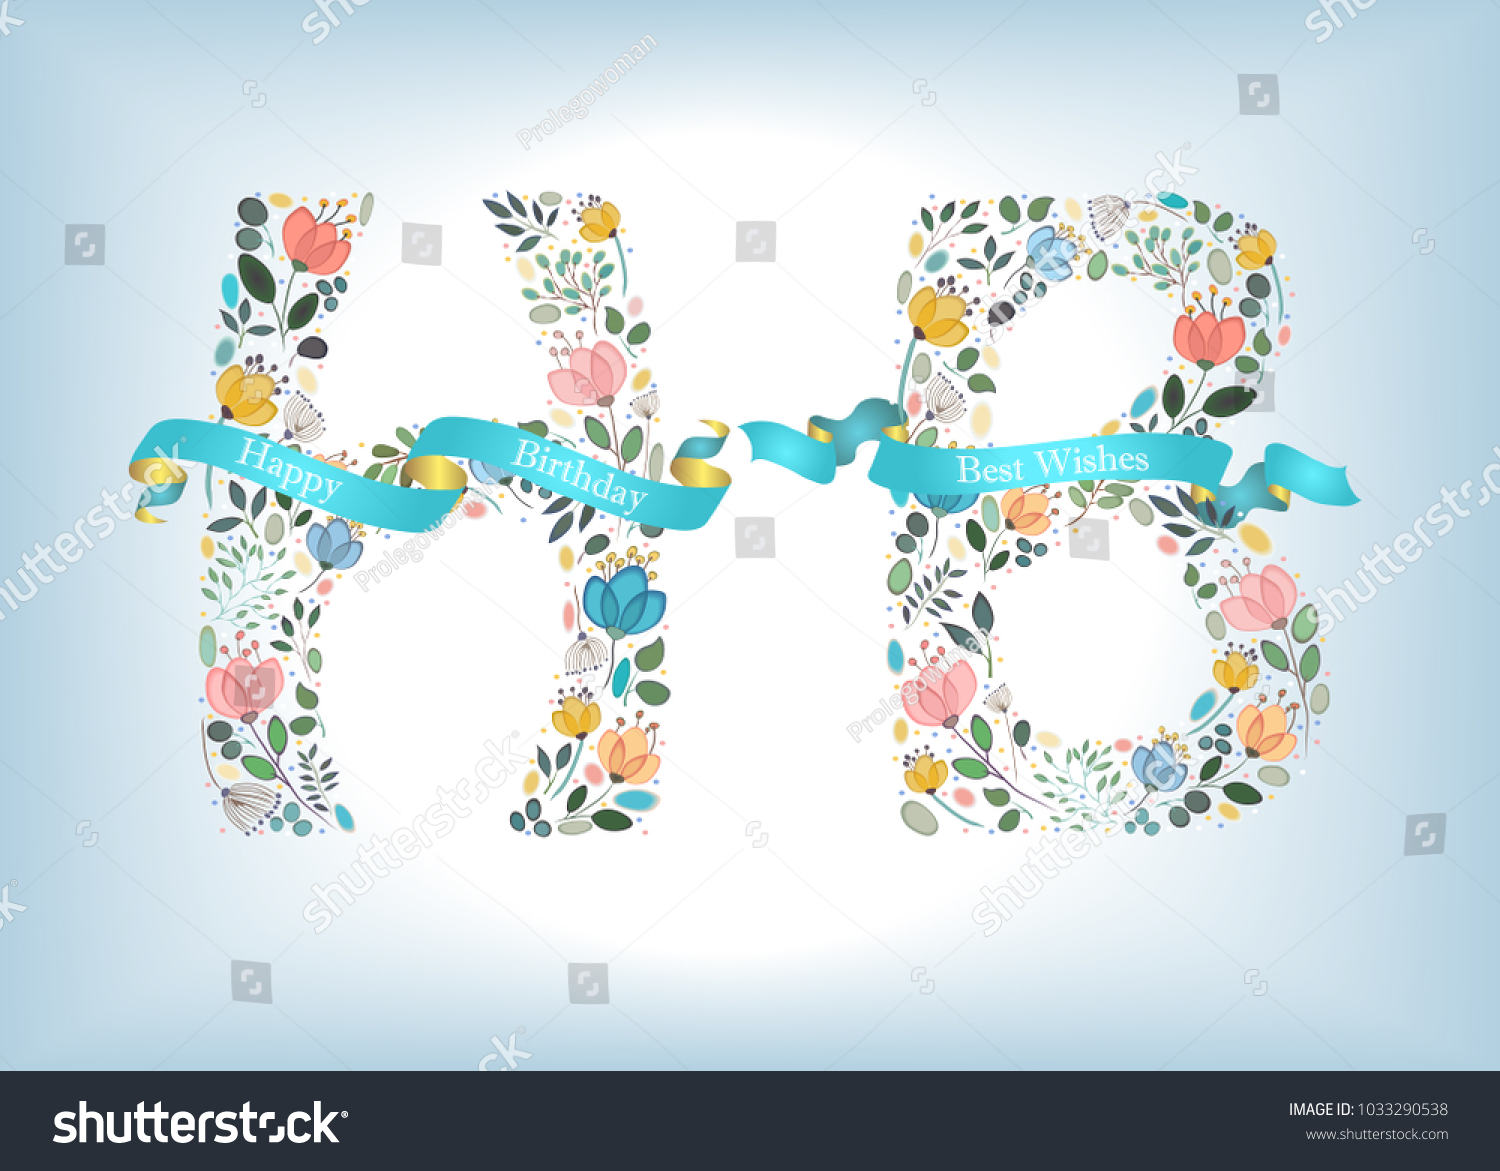 happy birthday floral letters h and b watercolor graceful flowers and plants blue